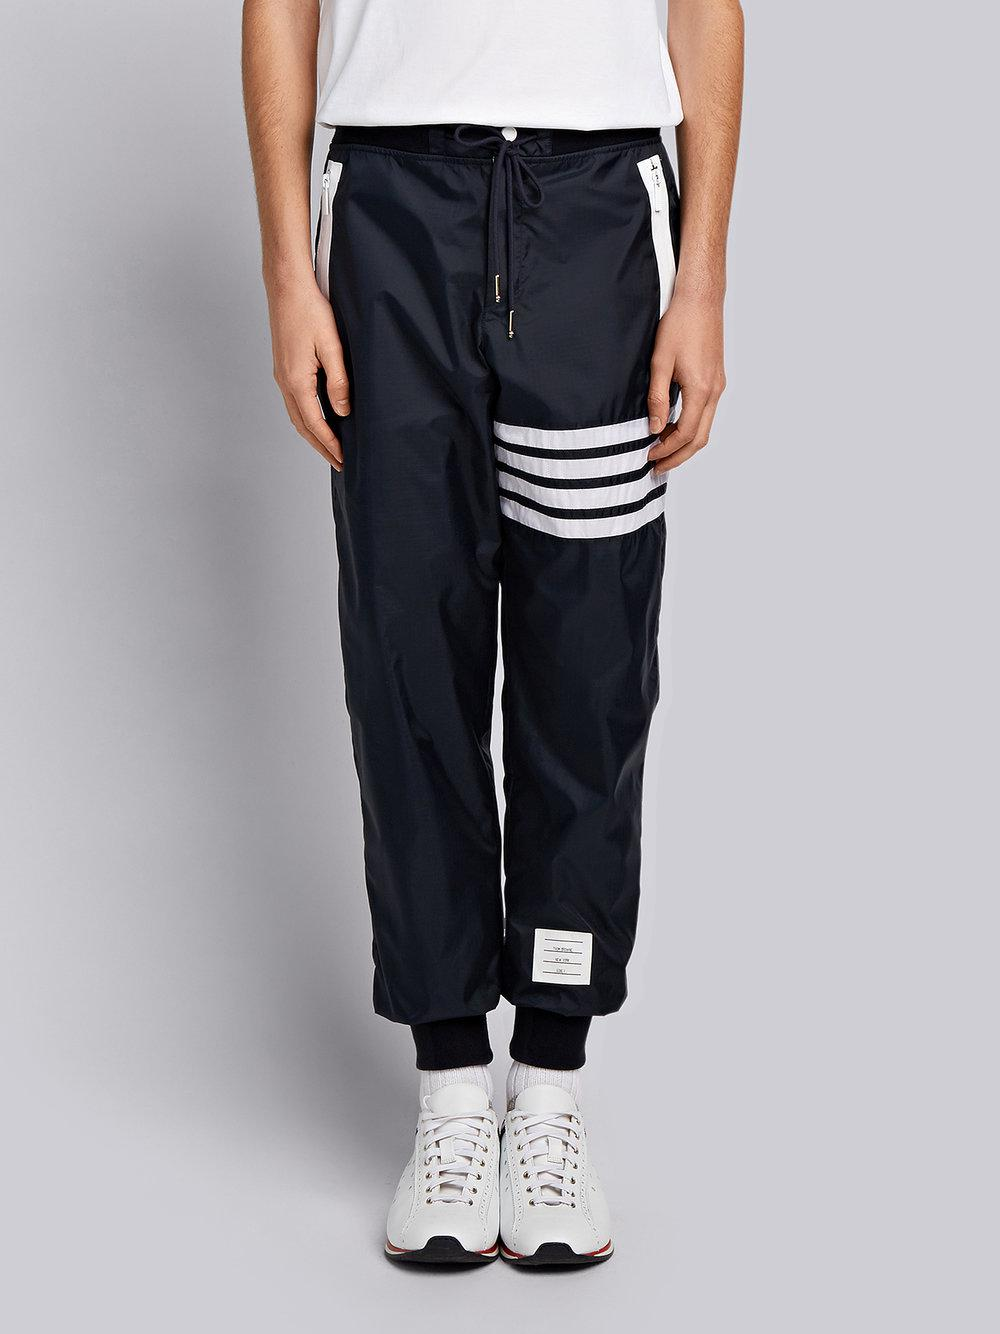 4-Bar Stripe Lightweight Ripstop Sweatpants - Blue Thom Browne Clearance Top Quality Cheap Affordable PlyfBUYx